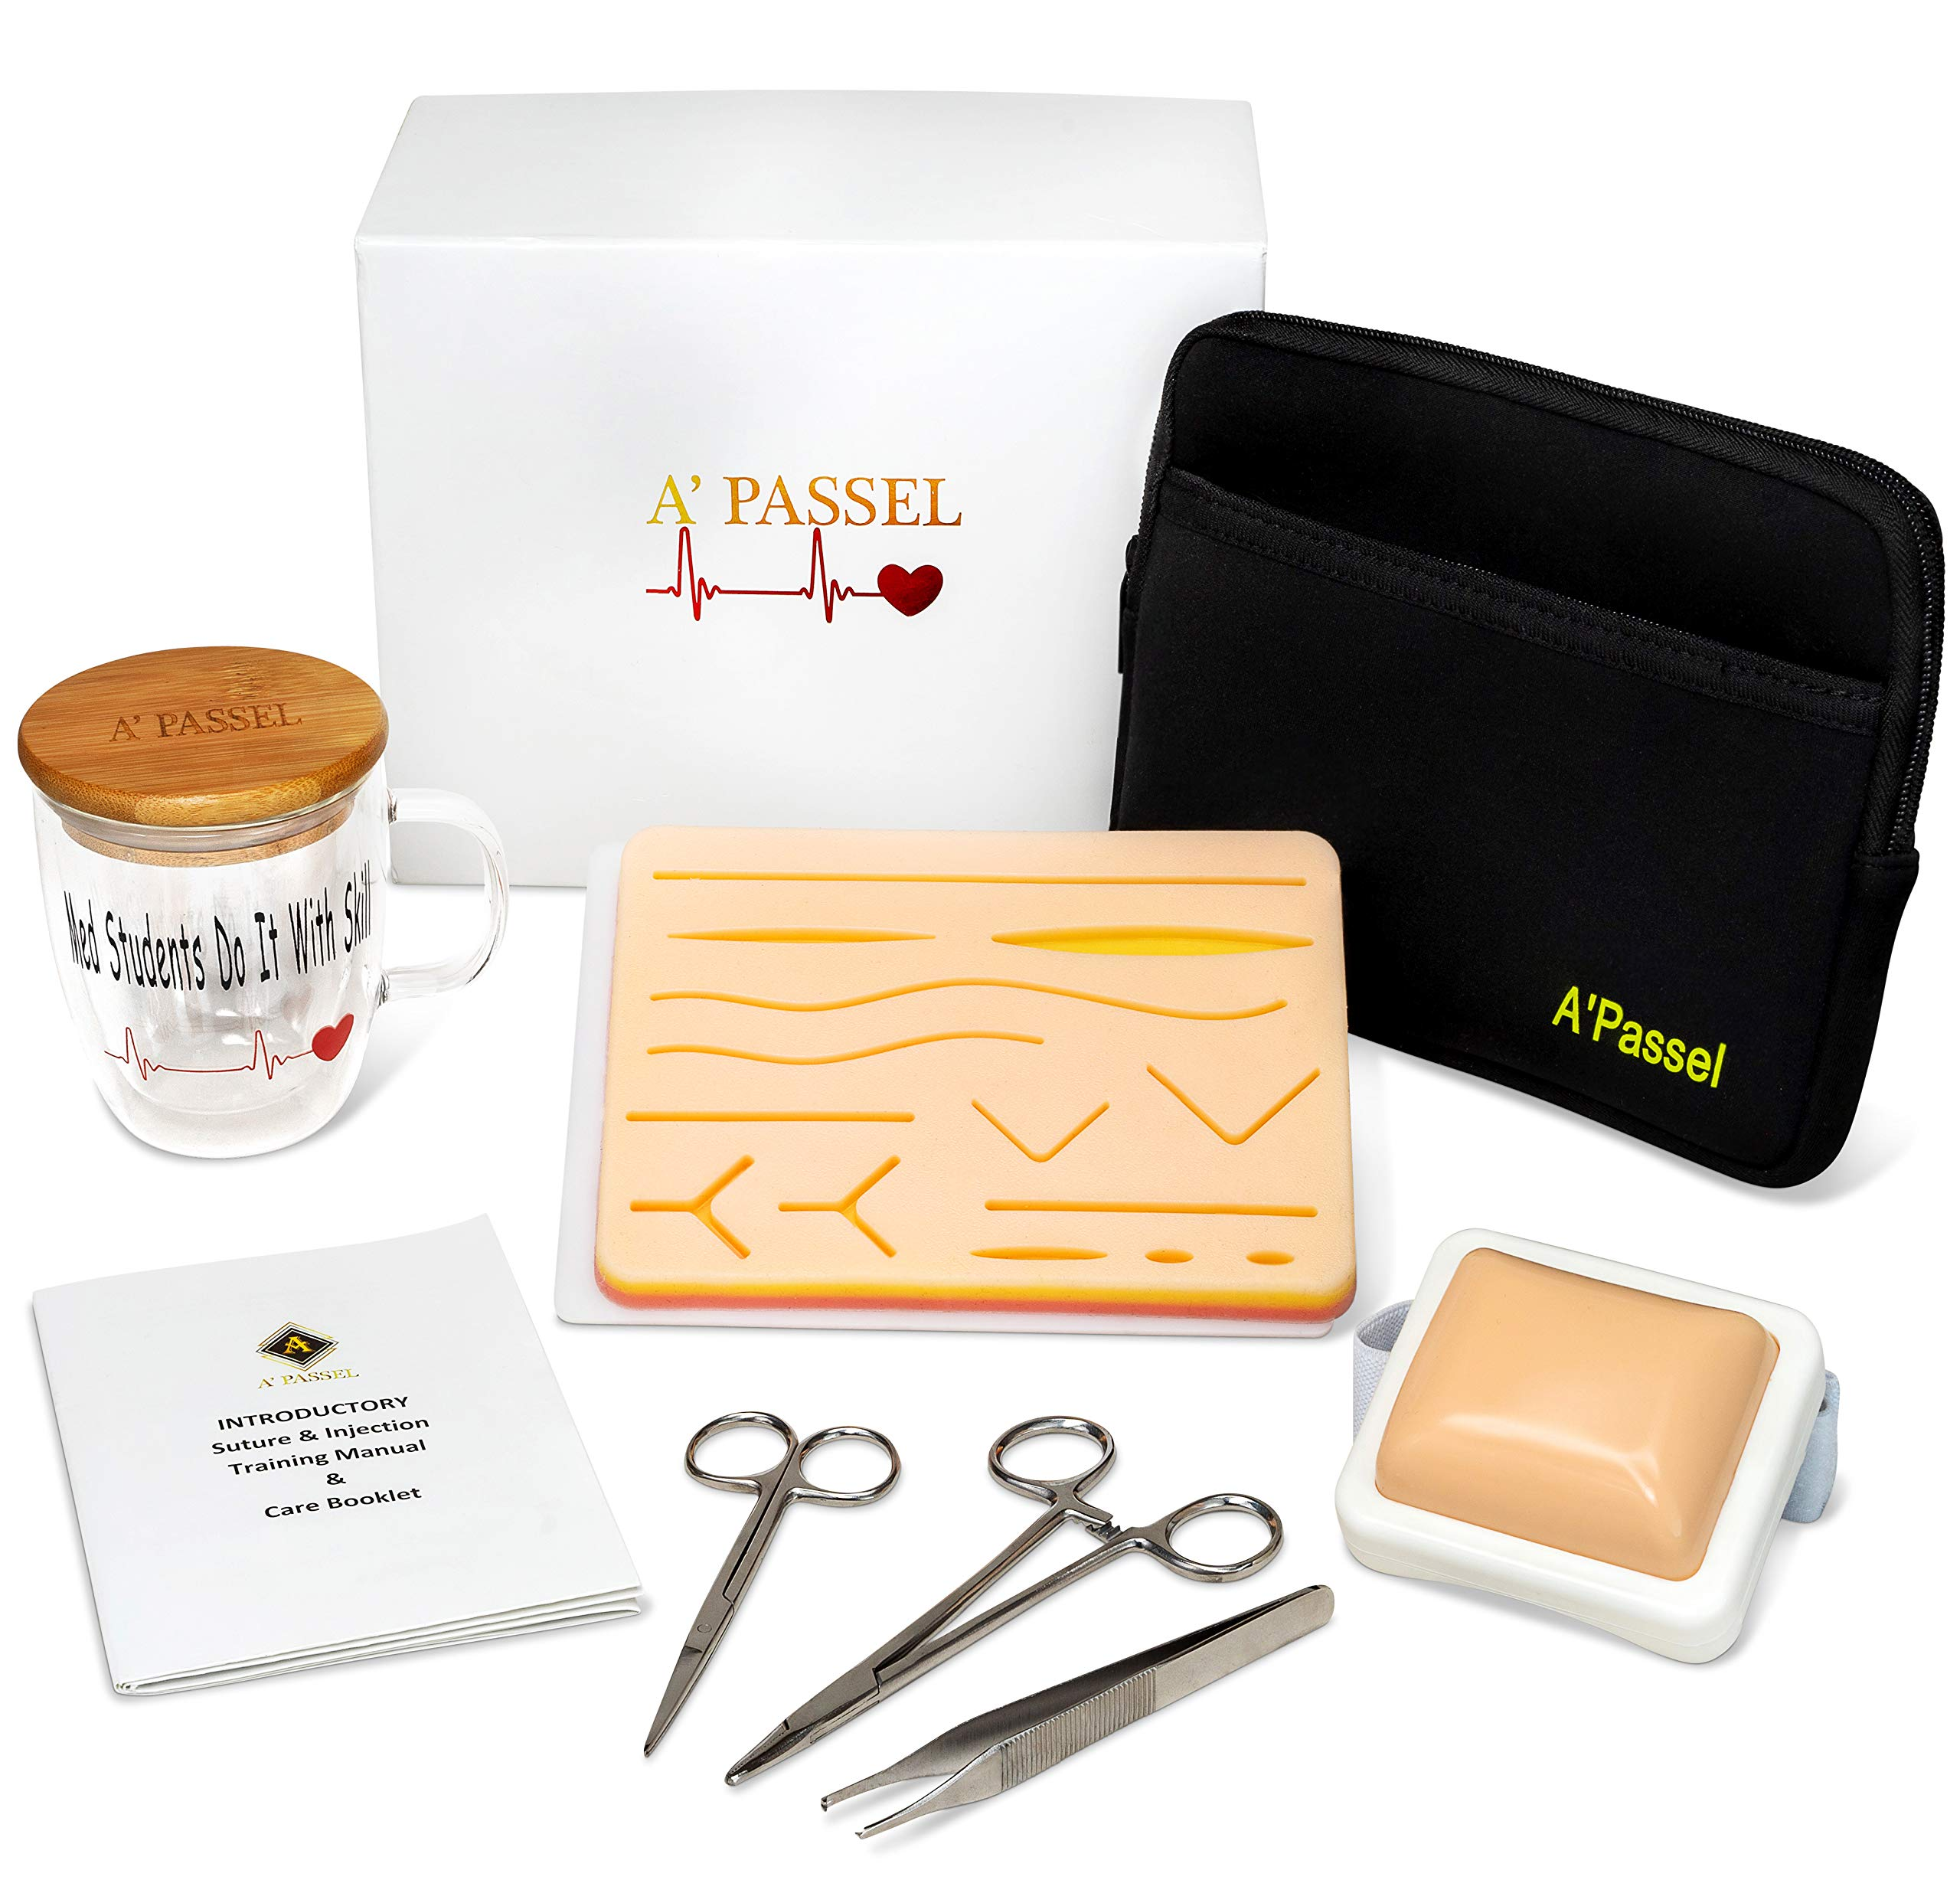 Suture Practice Kit Includes Injection and Suturing Pad Gift Boxed for Medical Nurse Surgical Dental or Veterinary Student - German Steel Skin Wound Training Tools Set - Carry Case Bonus Coffee Mug by A'Passel